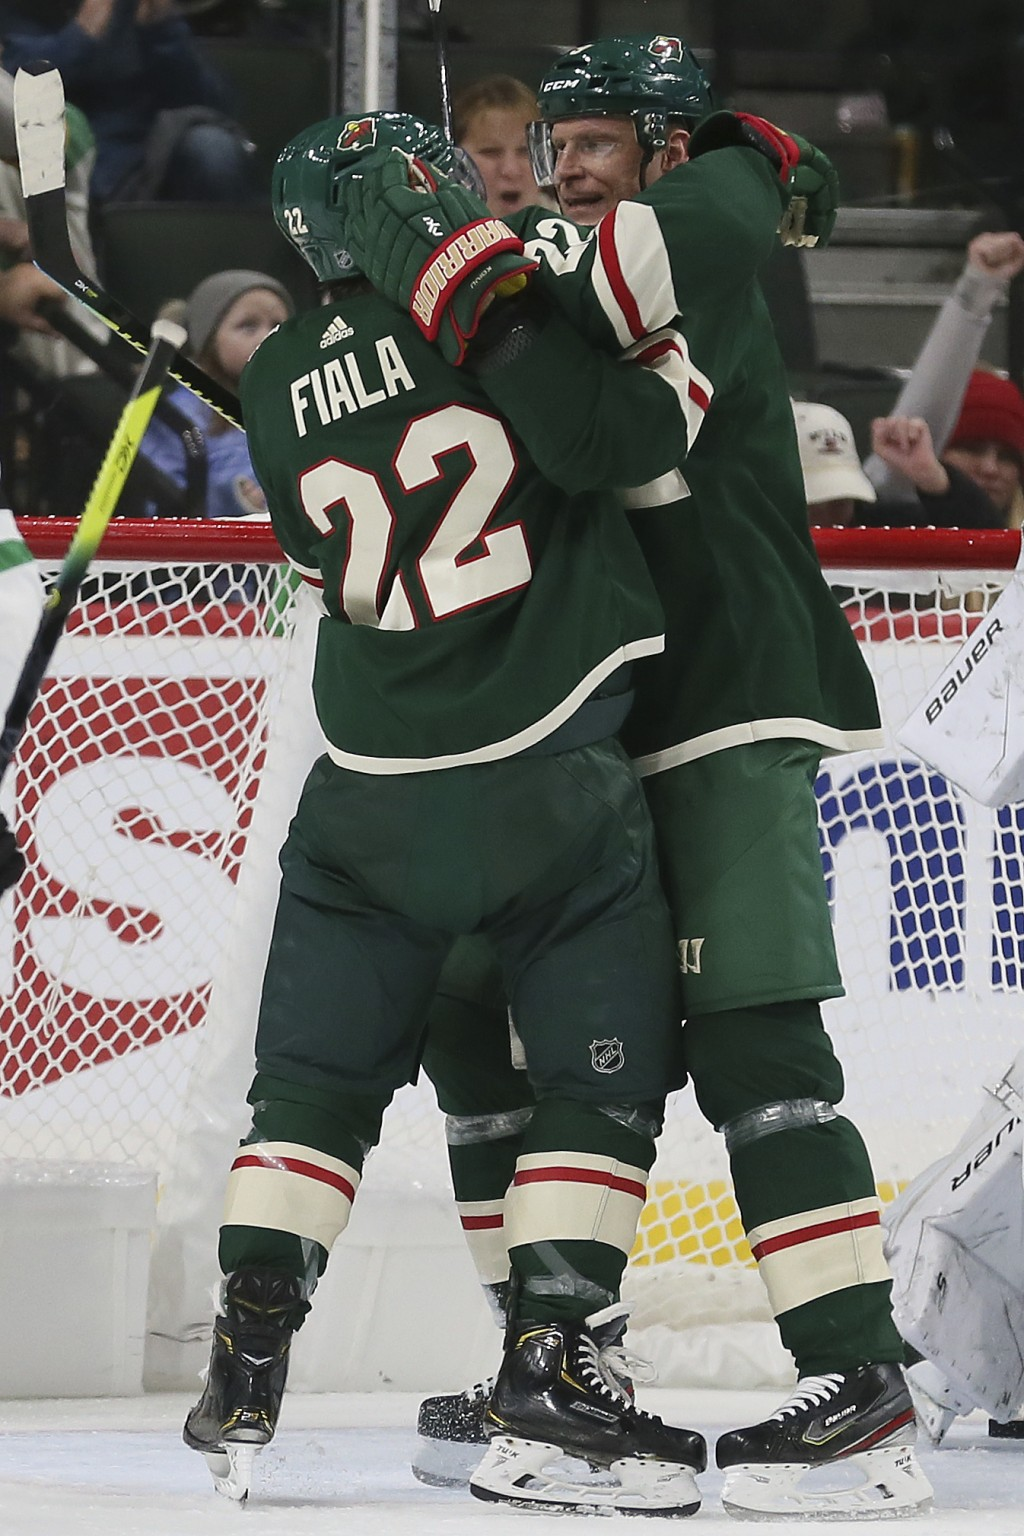 Minnesota Wild's Kevin Fiala hugs teammate Mikko Koivu in celebration after Fiala scored a goal against Dallas in the second period of an NHL hockey g...